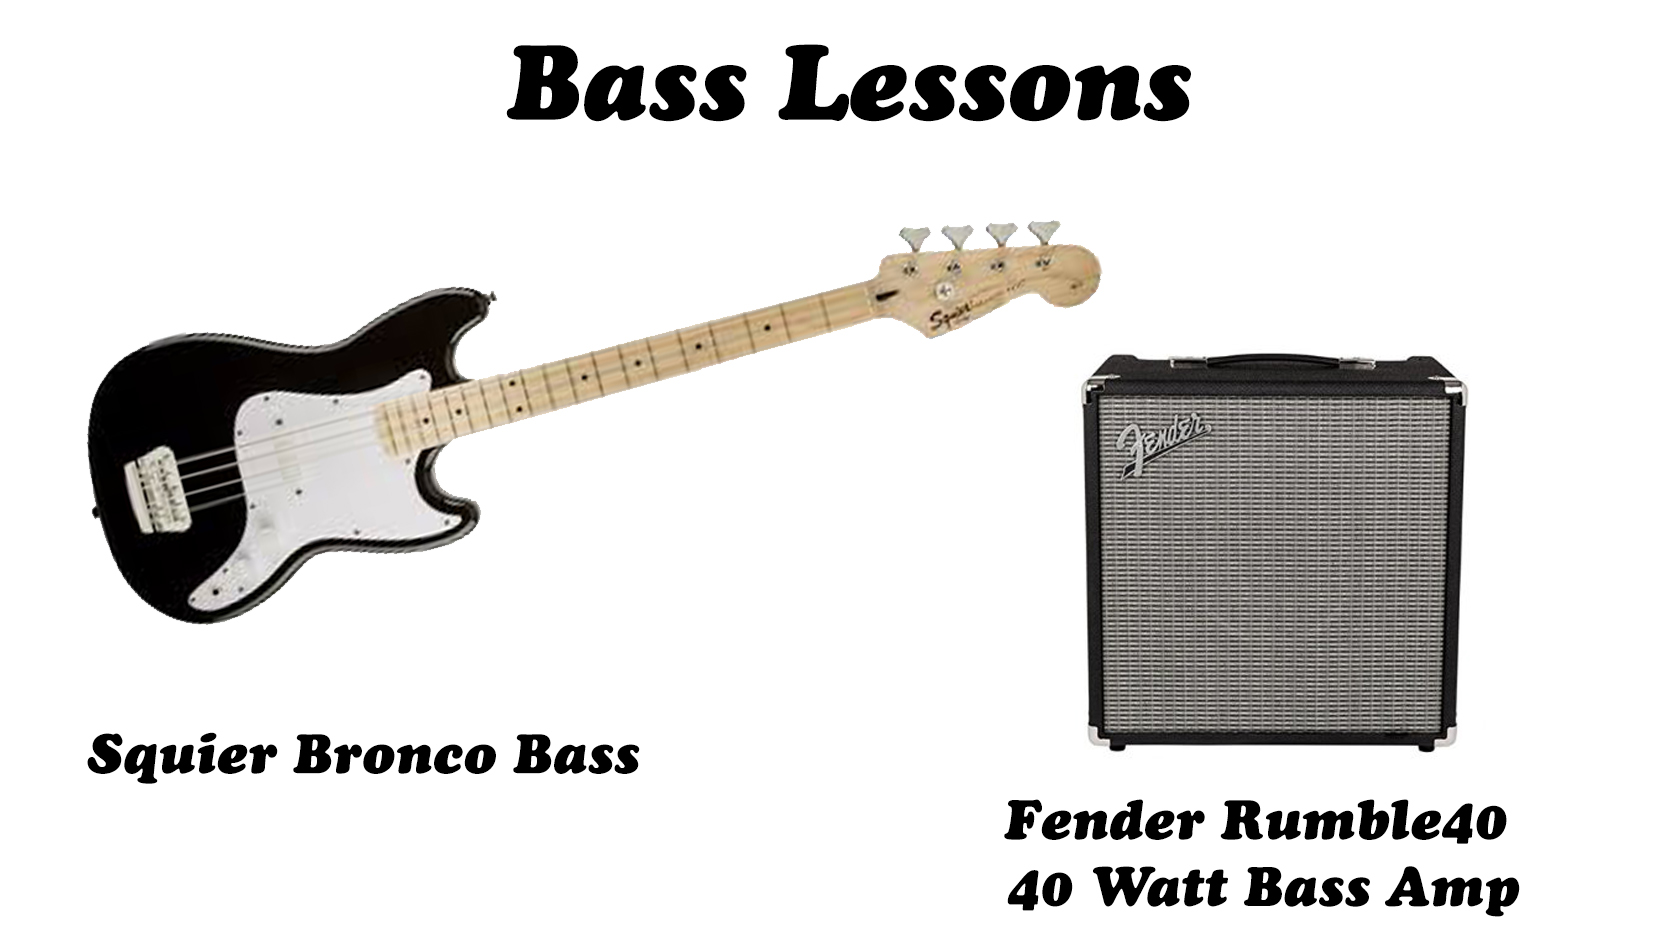 Bass Guitar Lessons Package